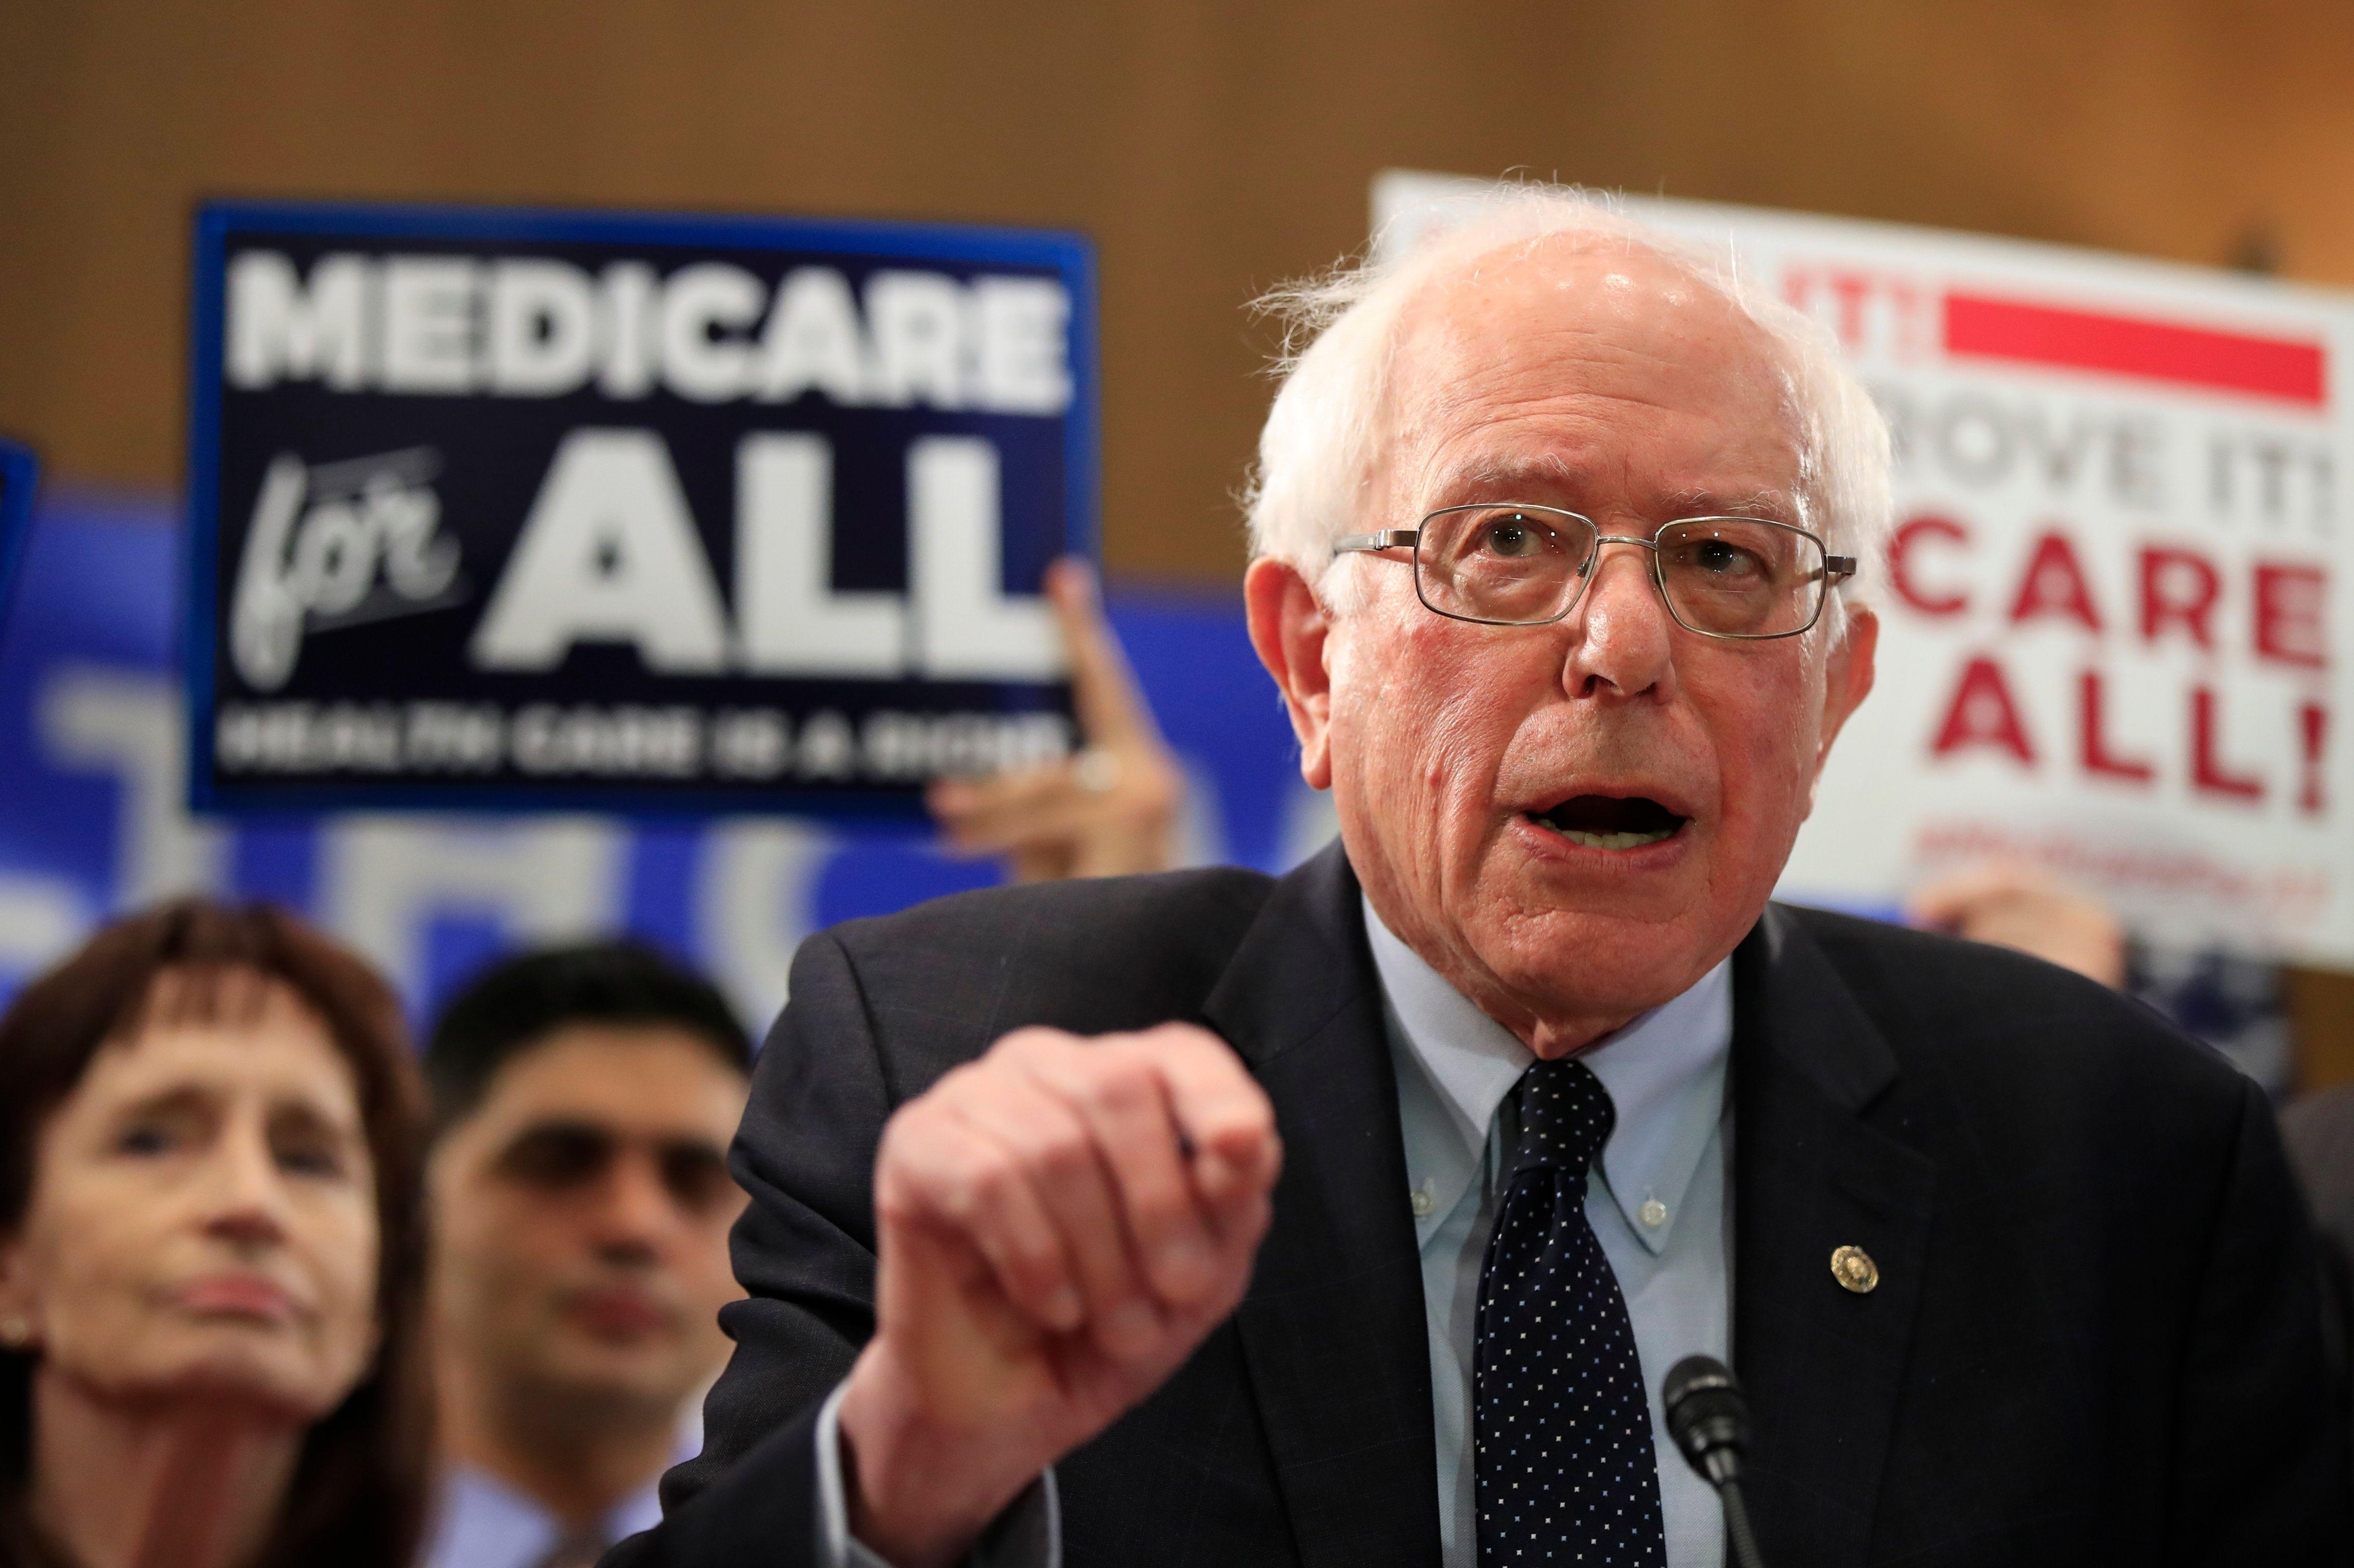 Why 'Medicare for all' is doomed